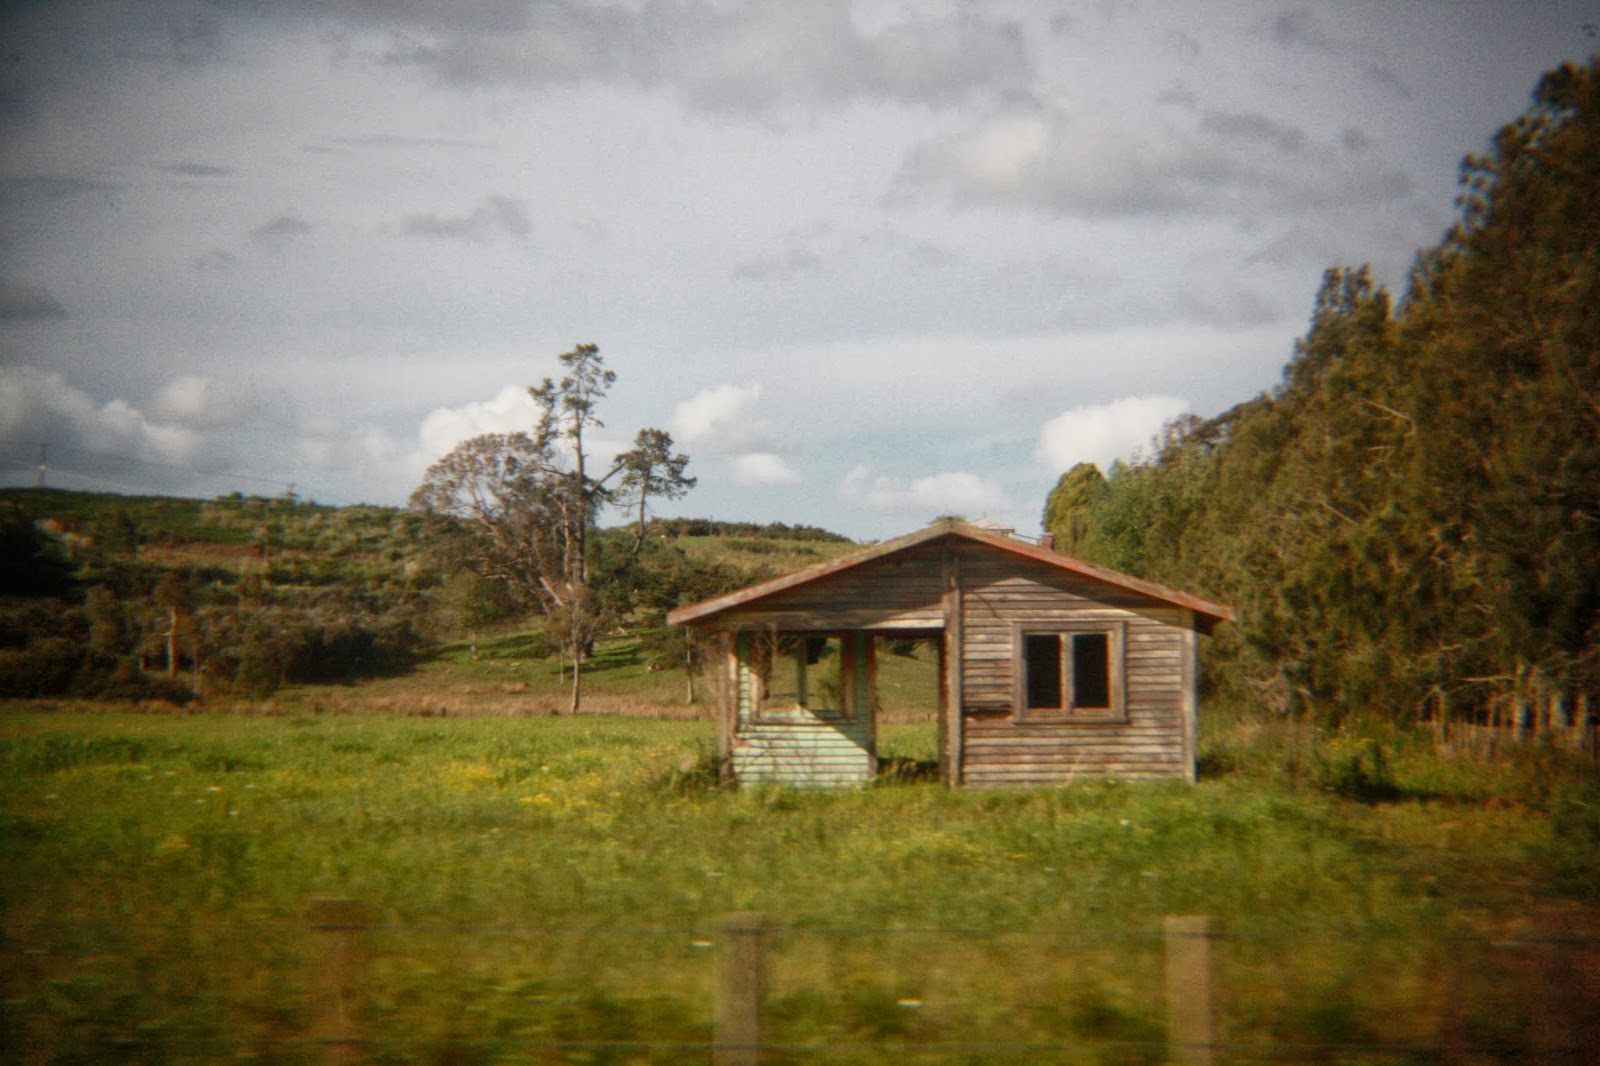 An abandoned home in a paddock. Both doors are gone; you can see right through it.